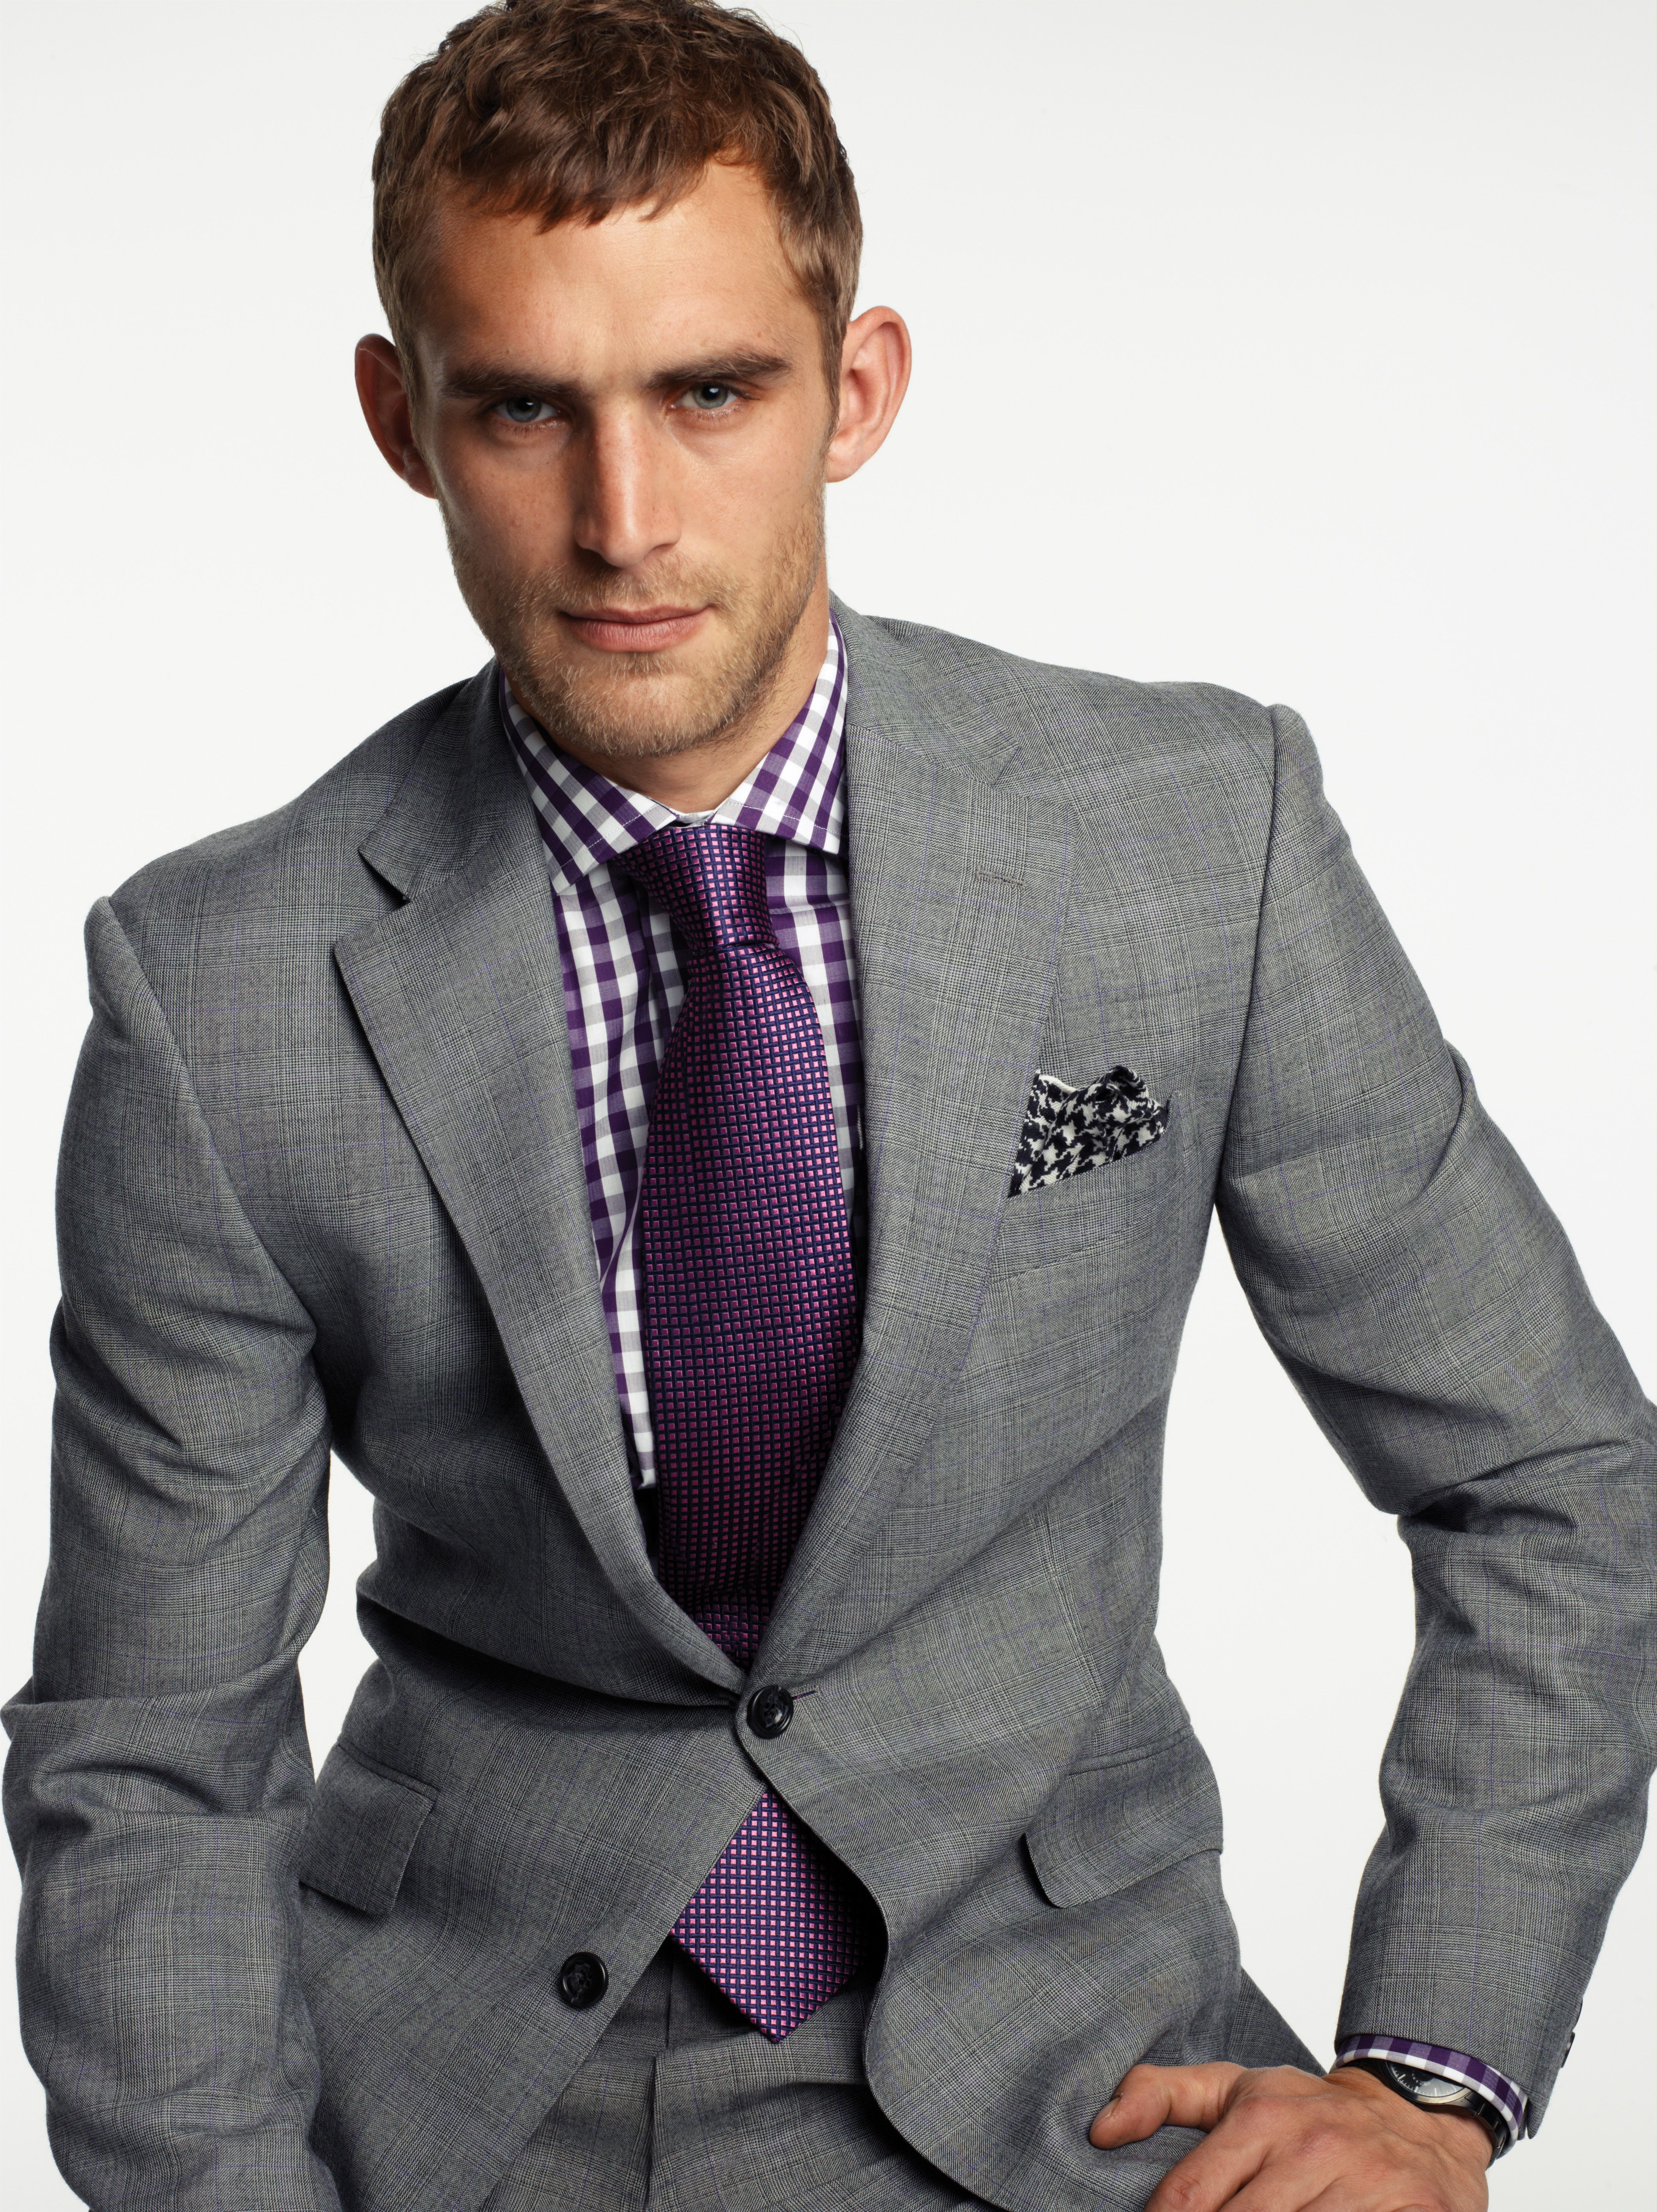 Fantastic Look The Grey And The Purple Together Look